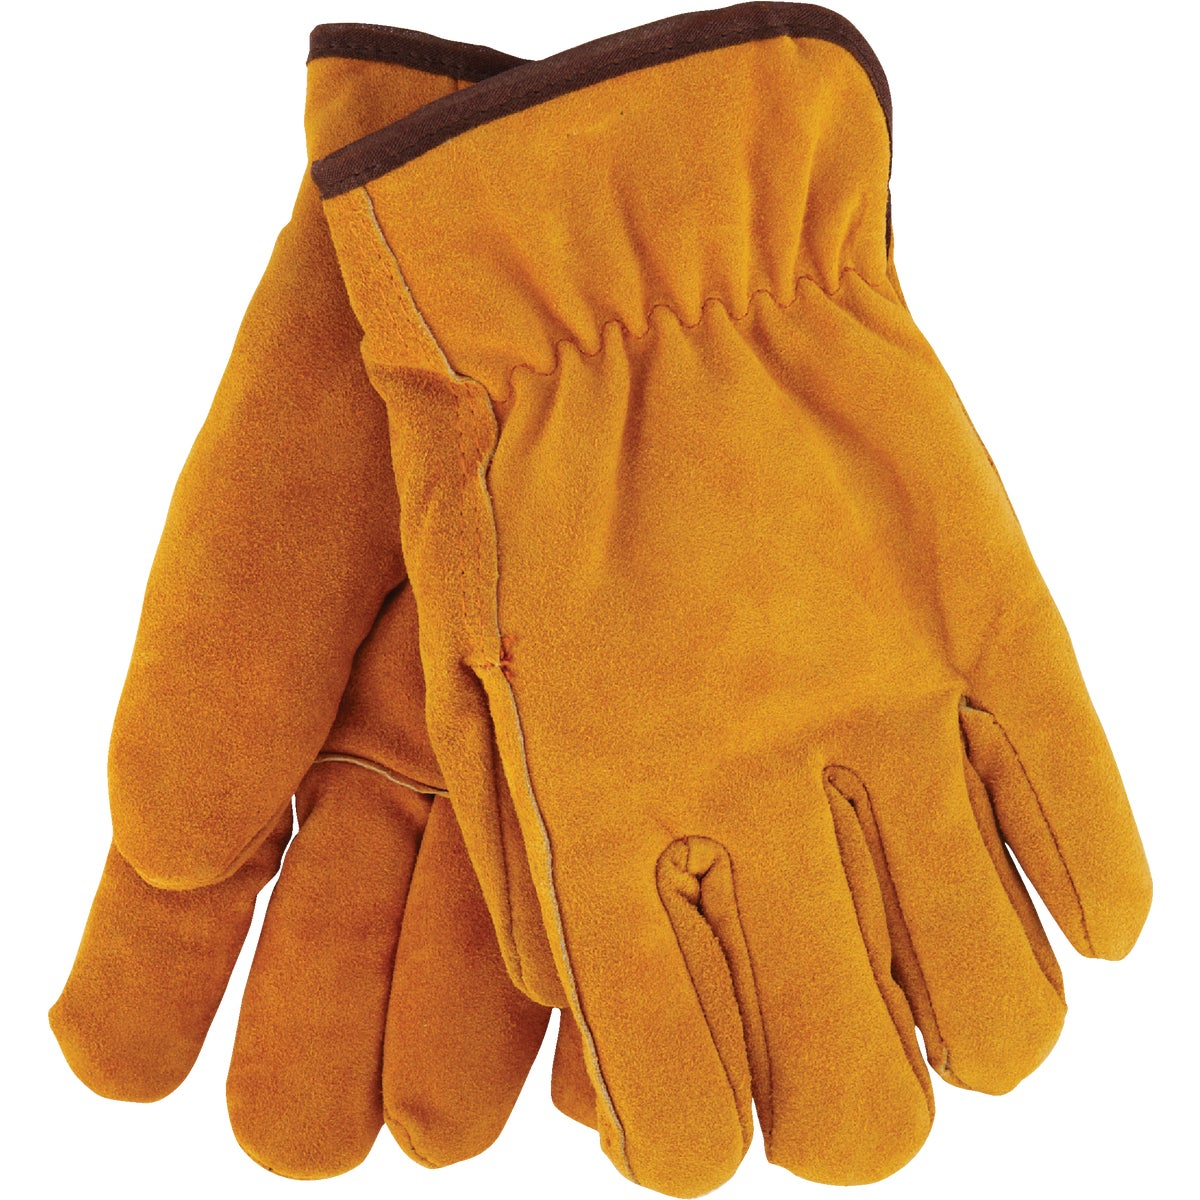 MED LEATHER LINED GLOVE - 706434 by Do it Best